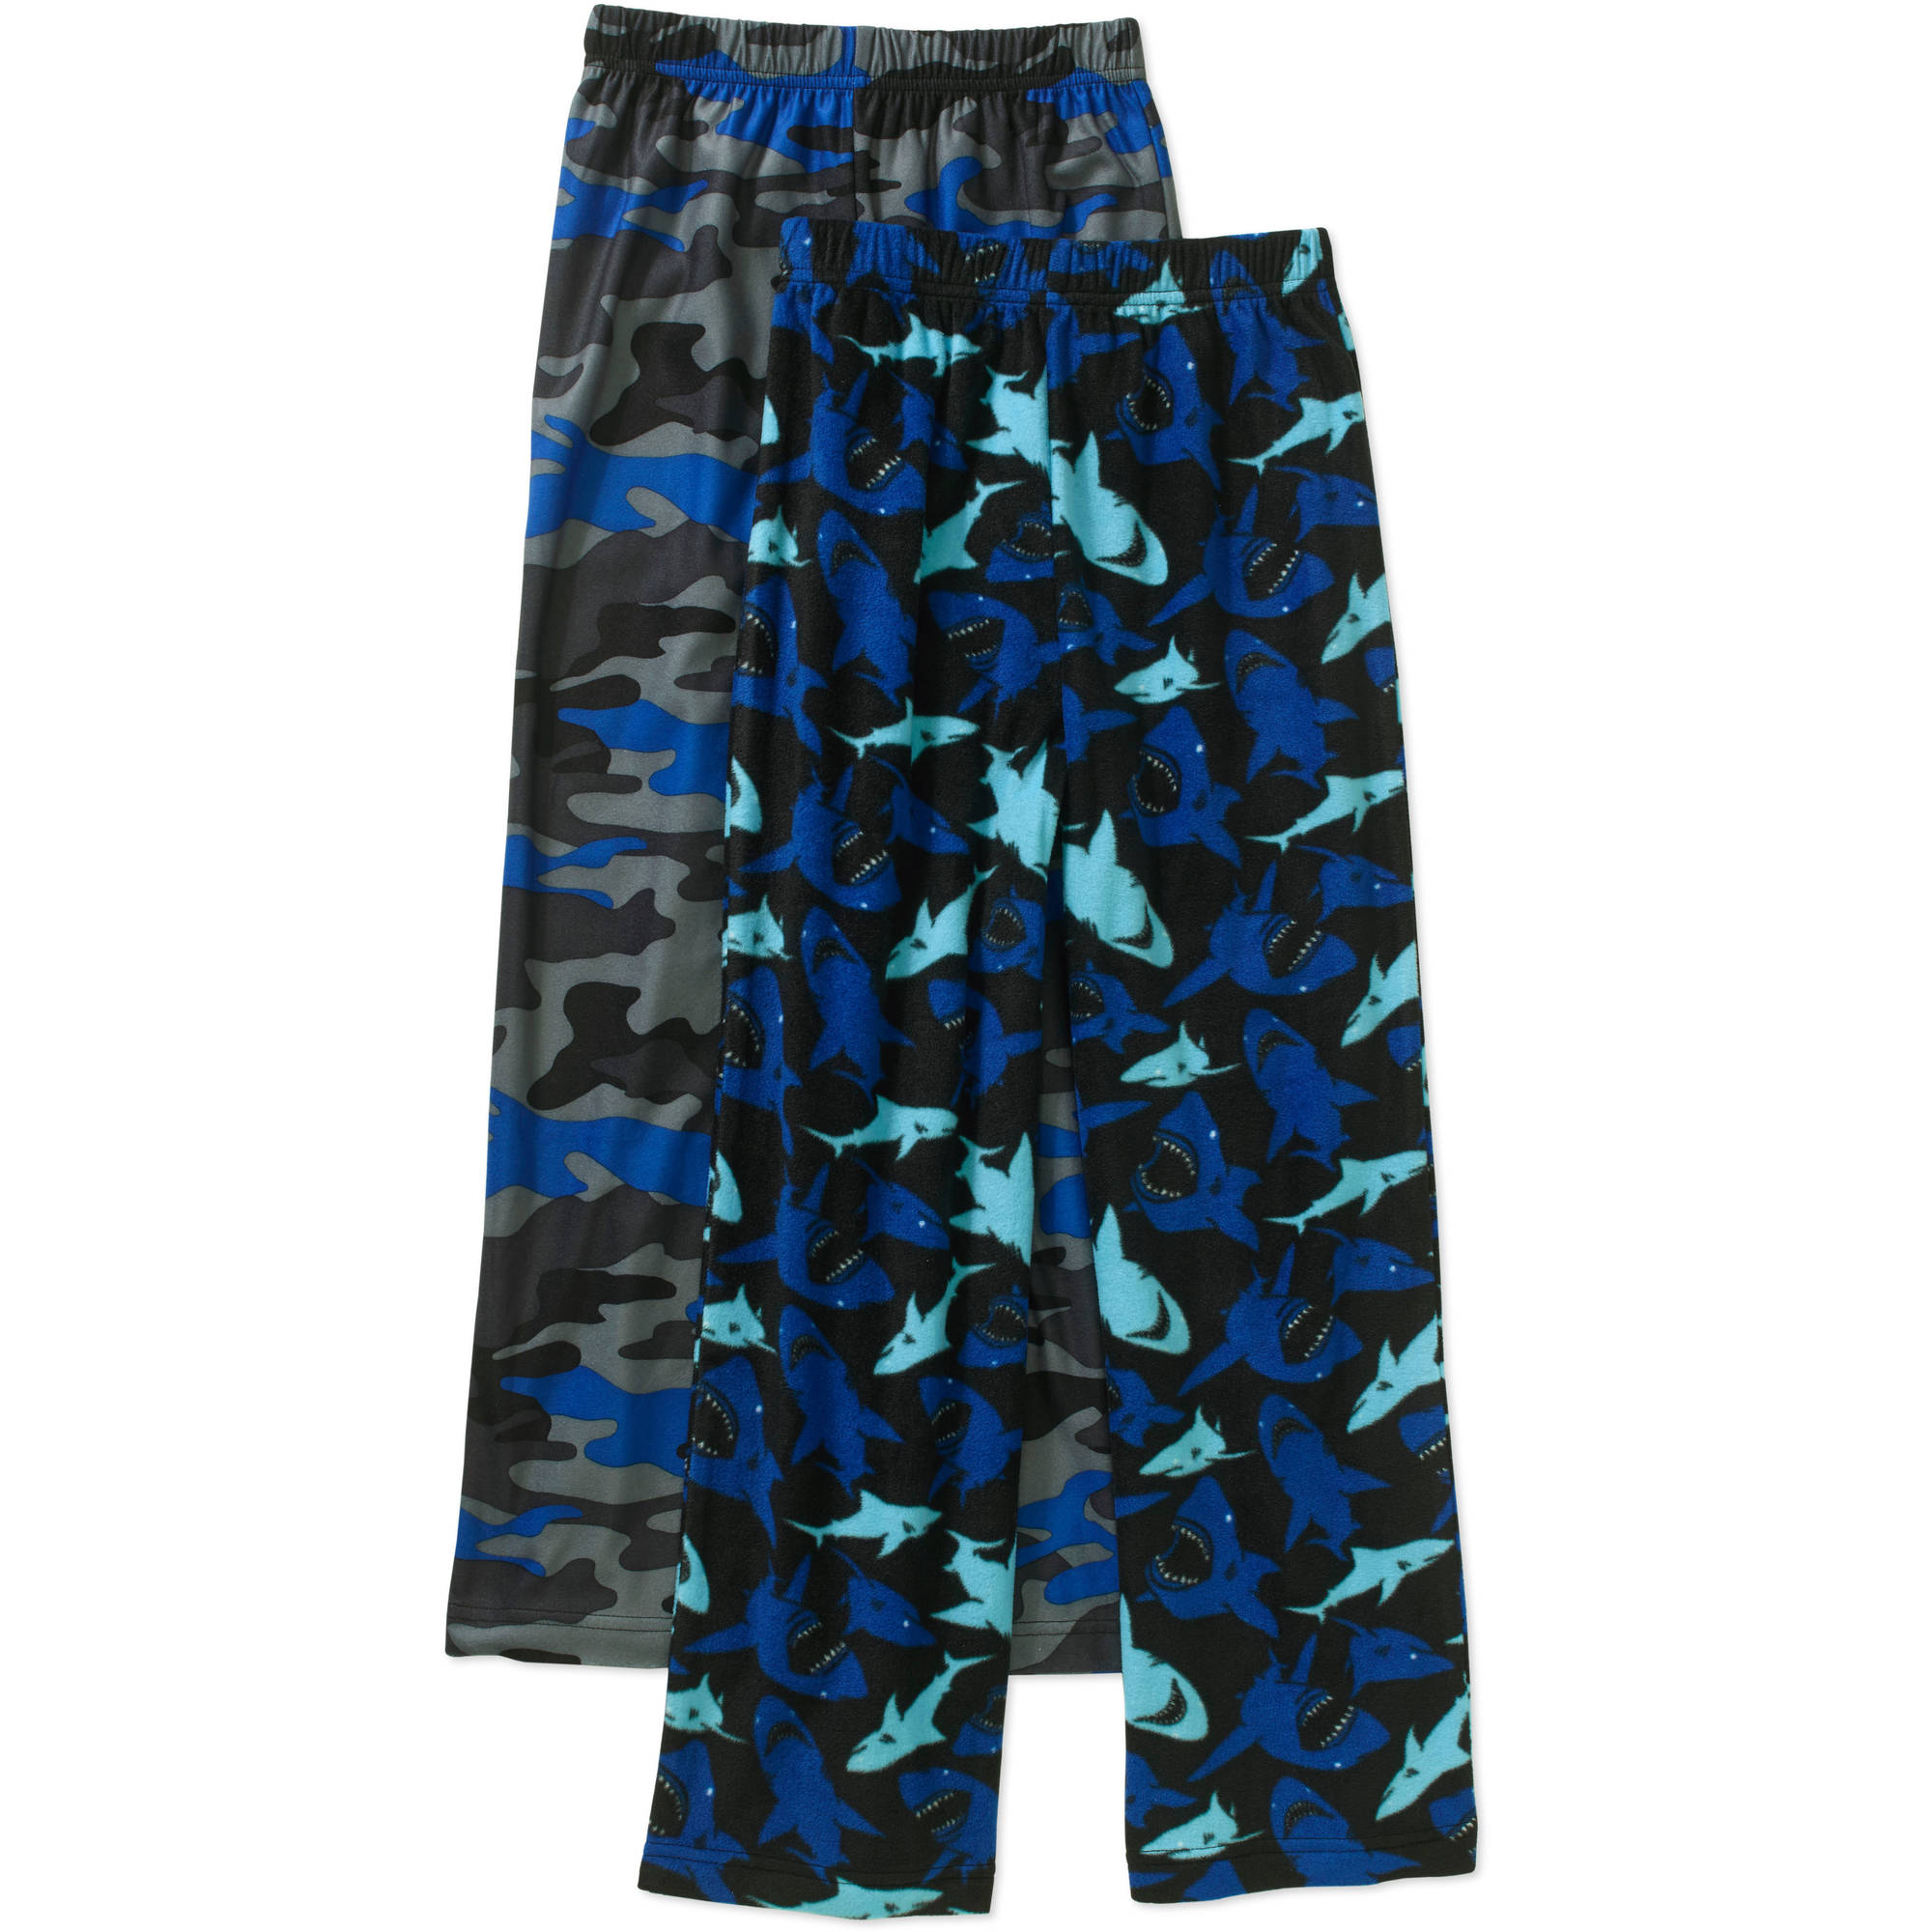 Shop Stylish Boys Pajamas